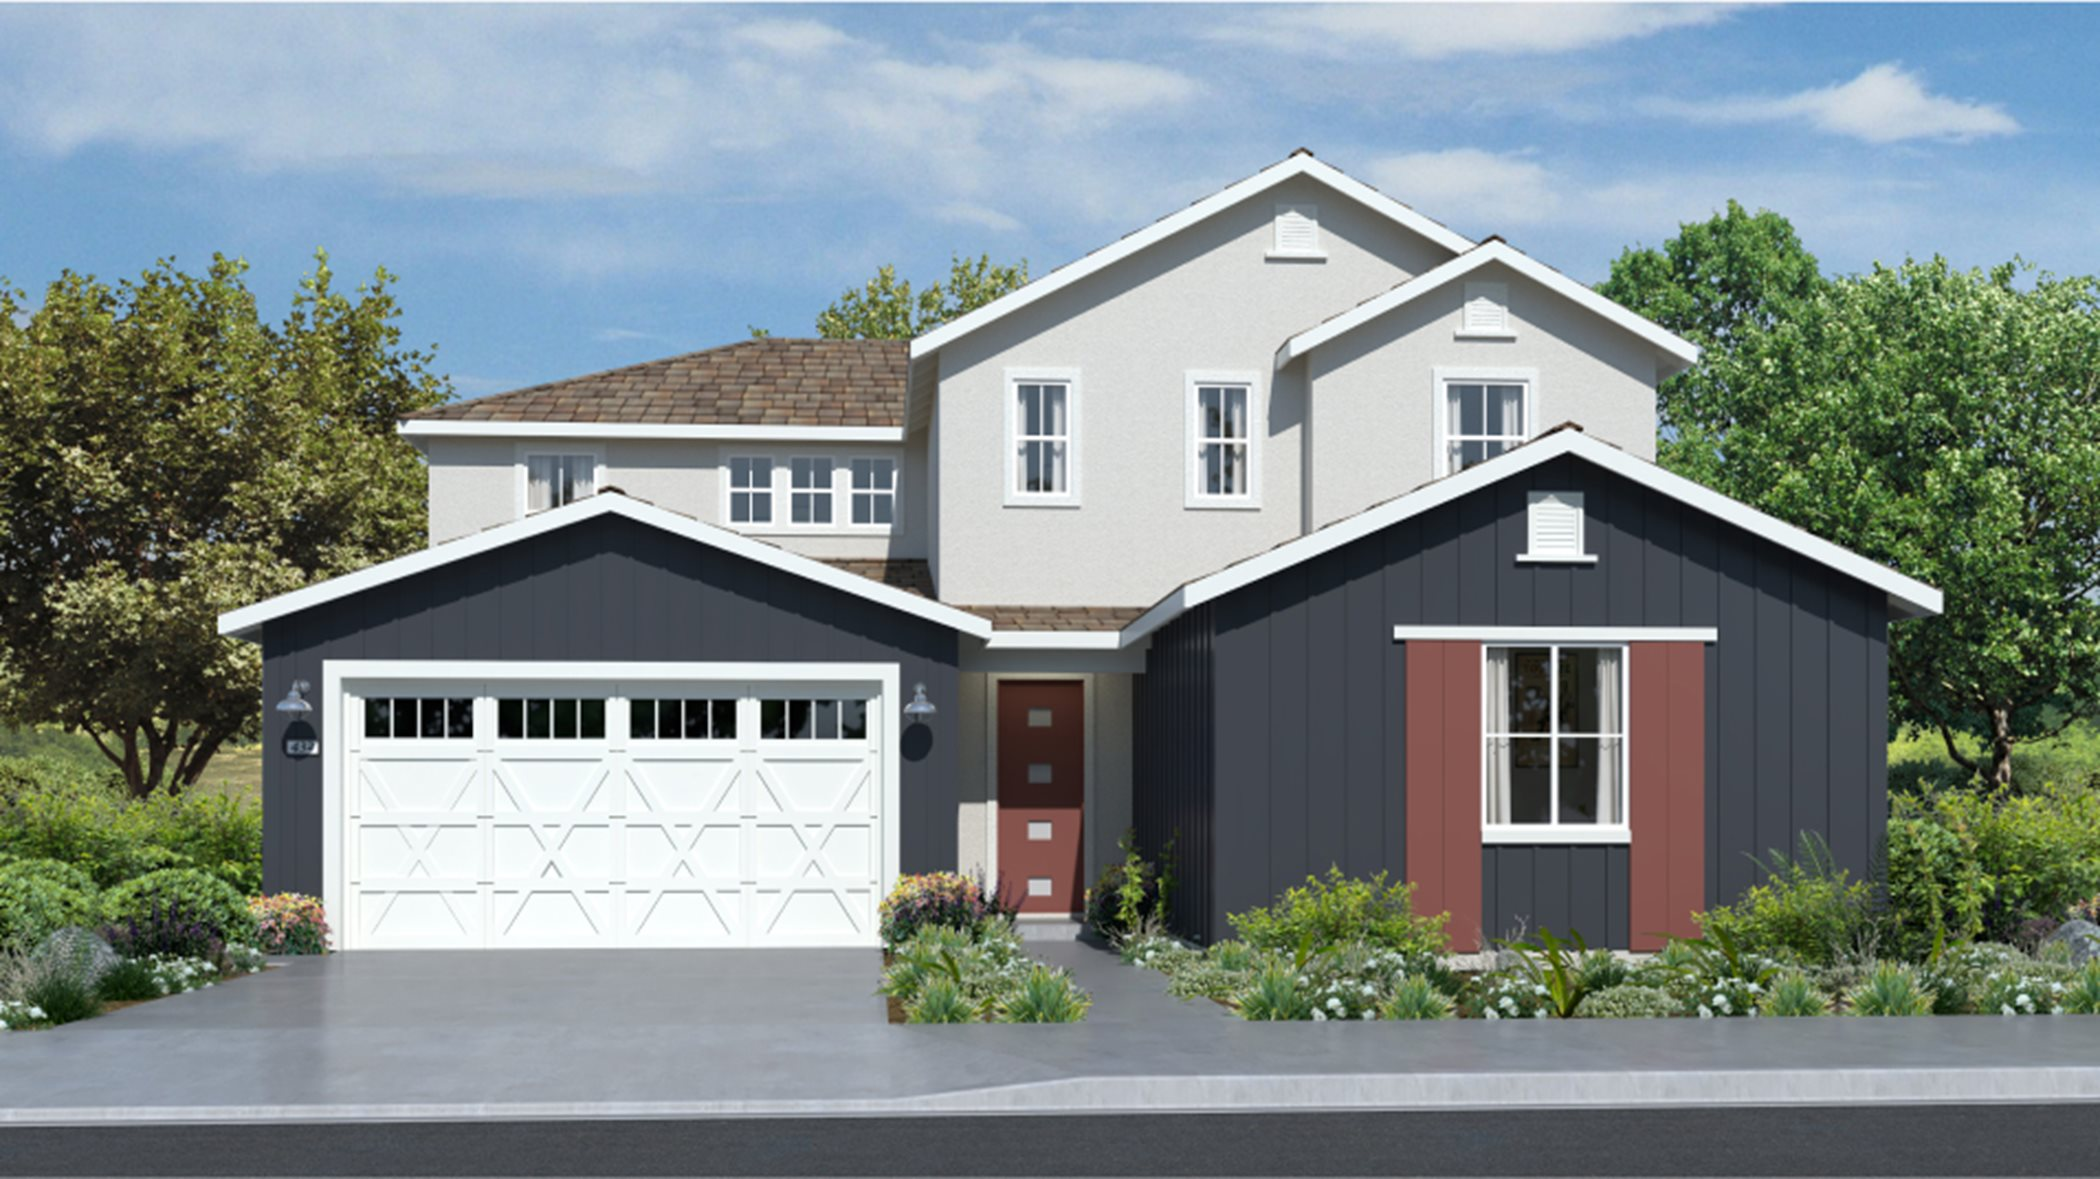 Residence 2282 Exterior A